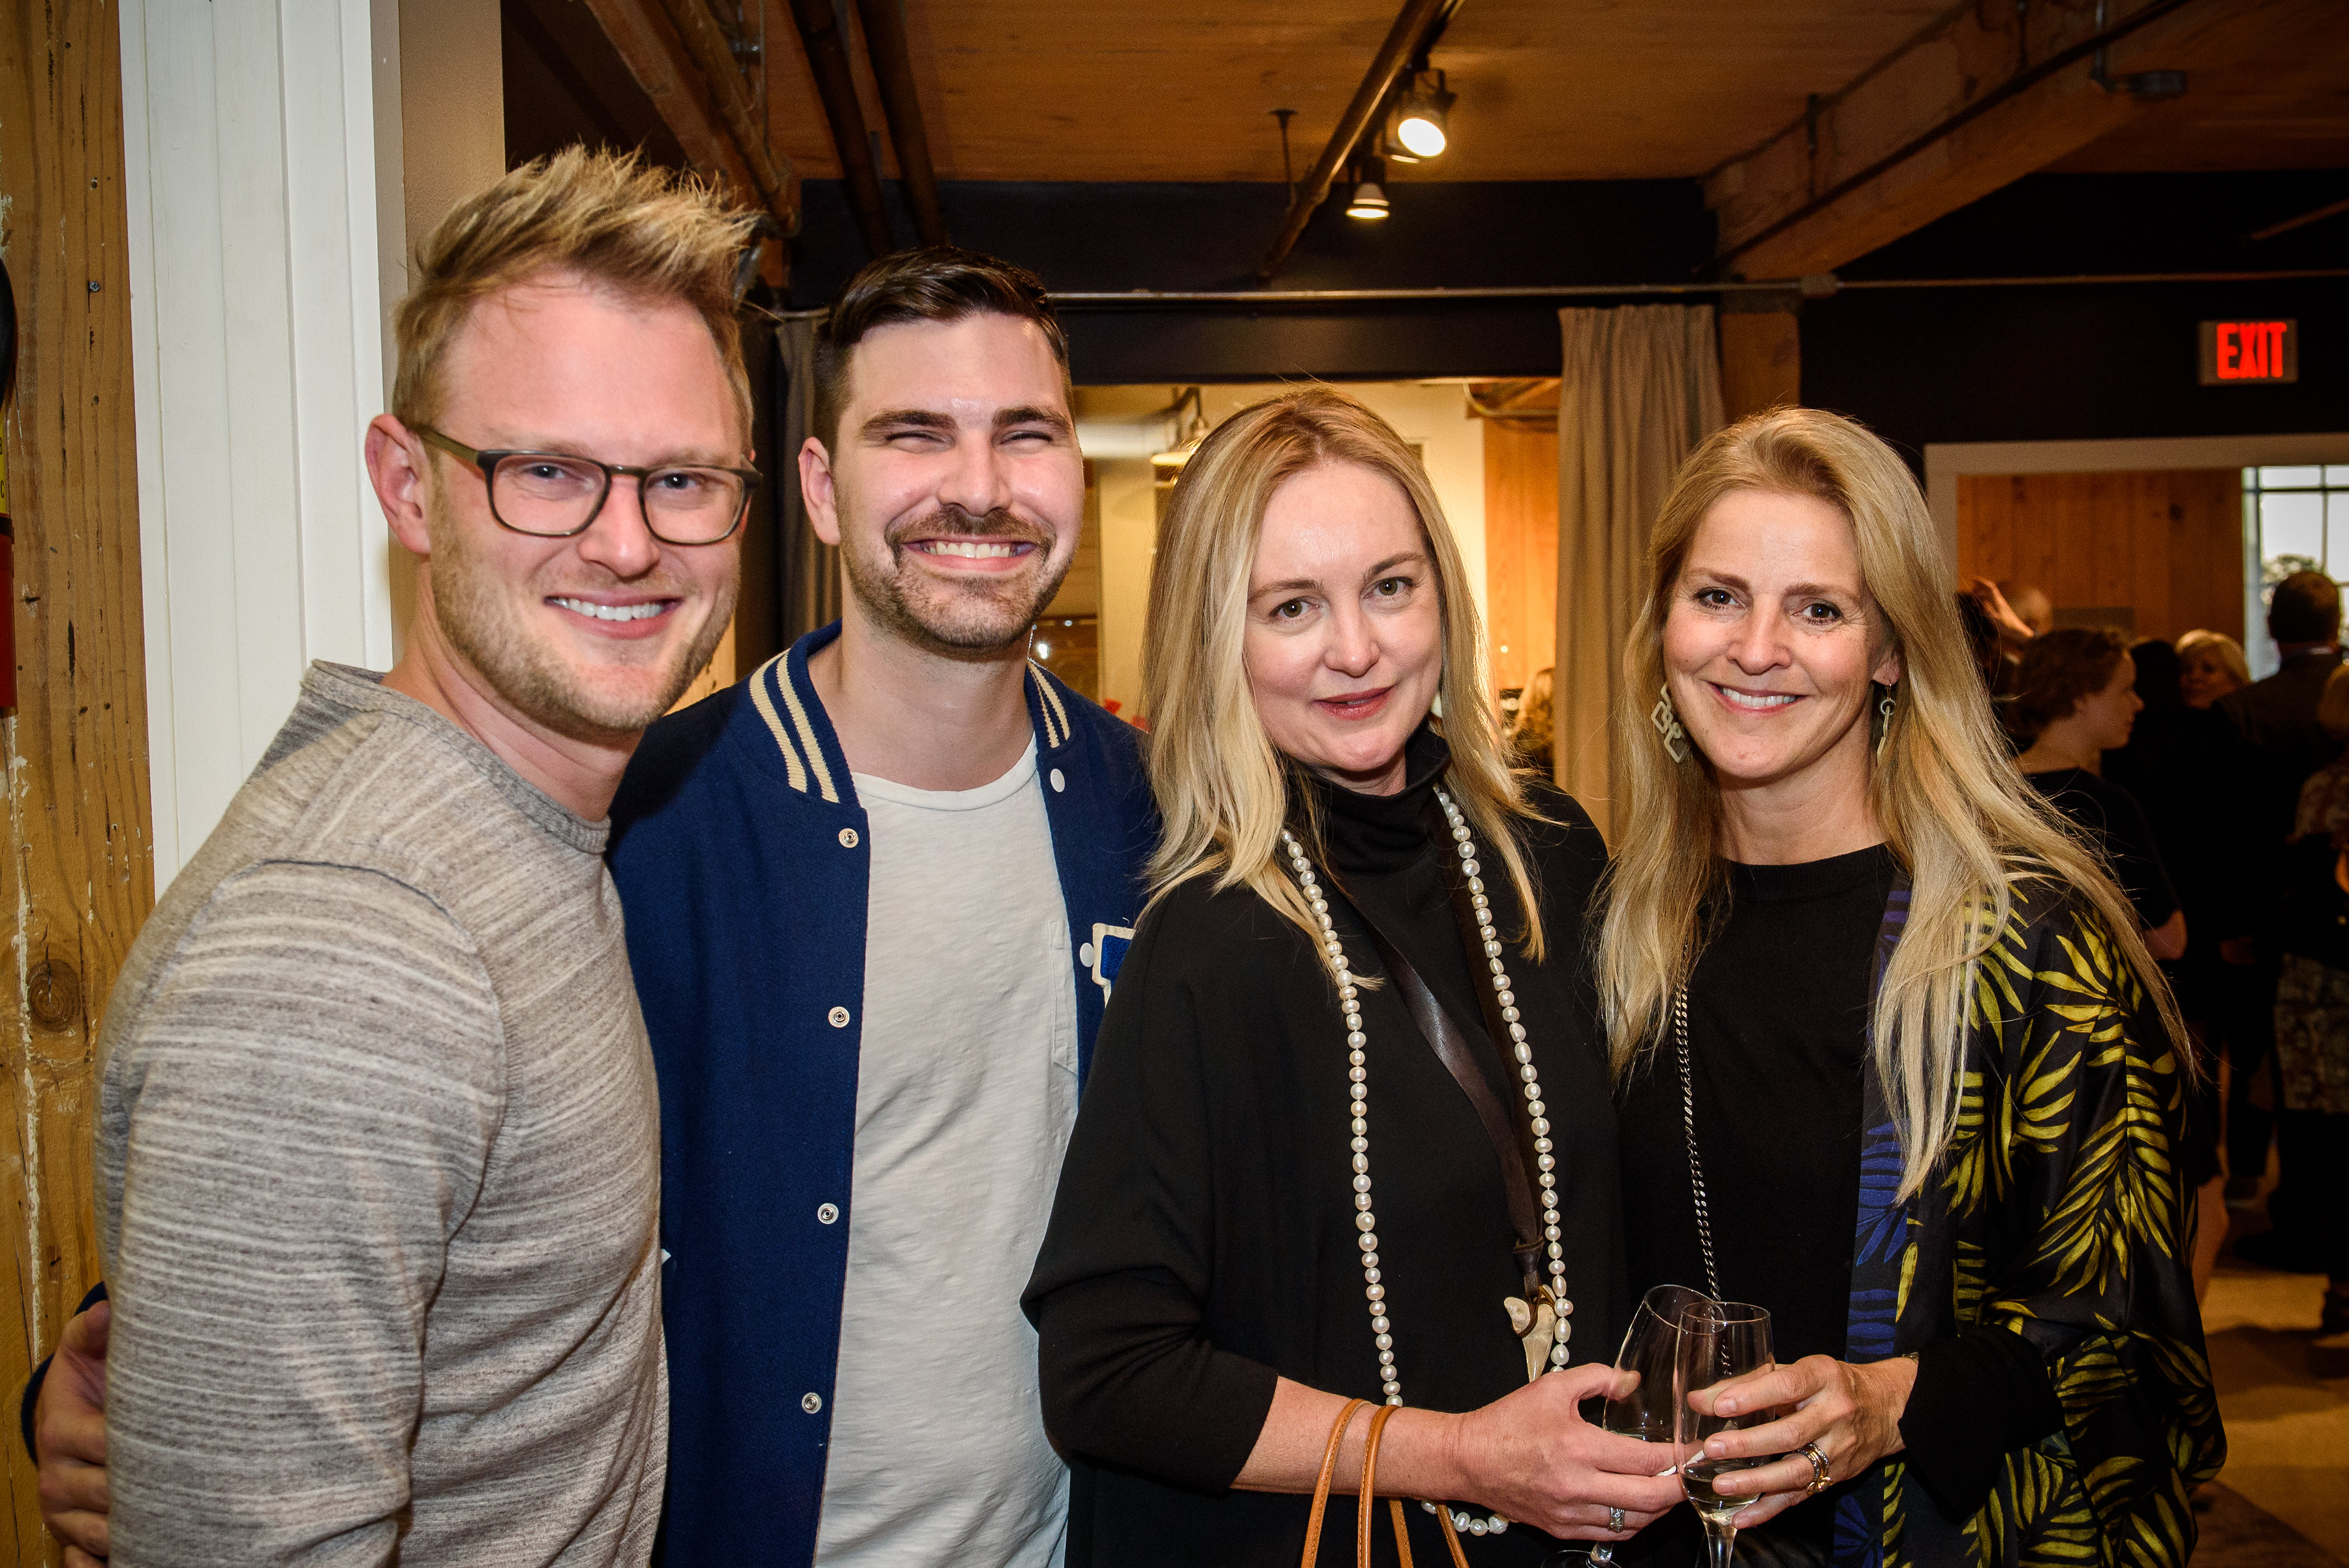 Bobby Berk (left) with Courtney Pisarik (right) and guests